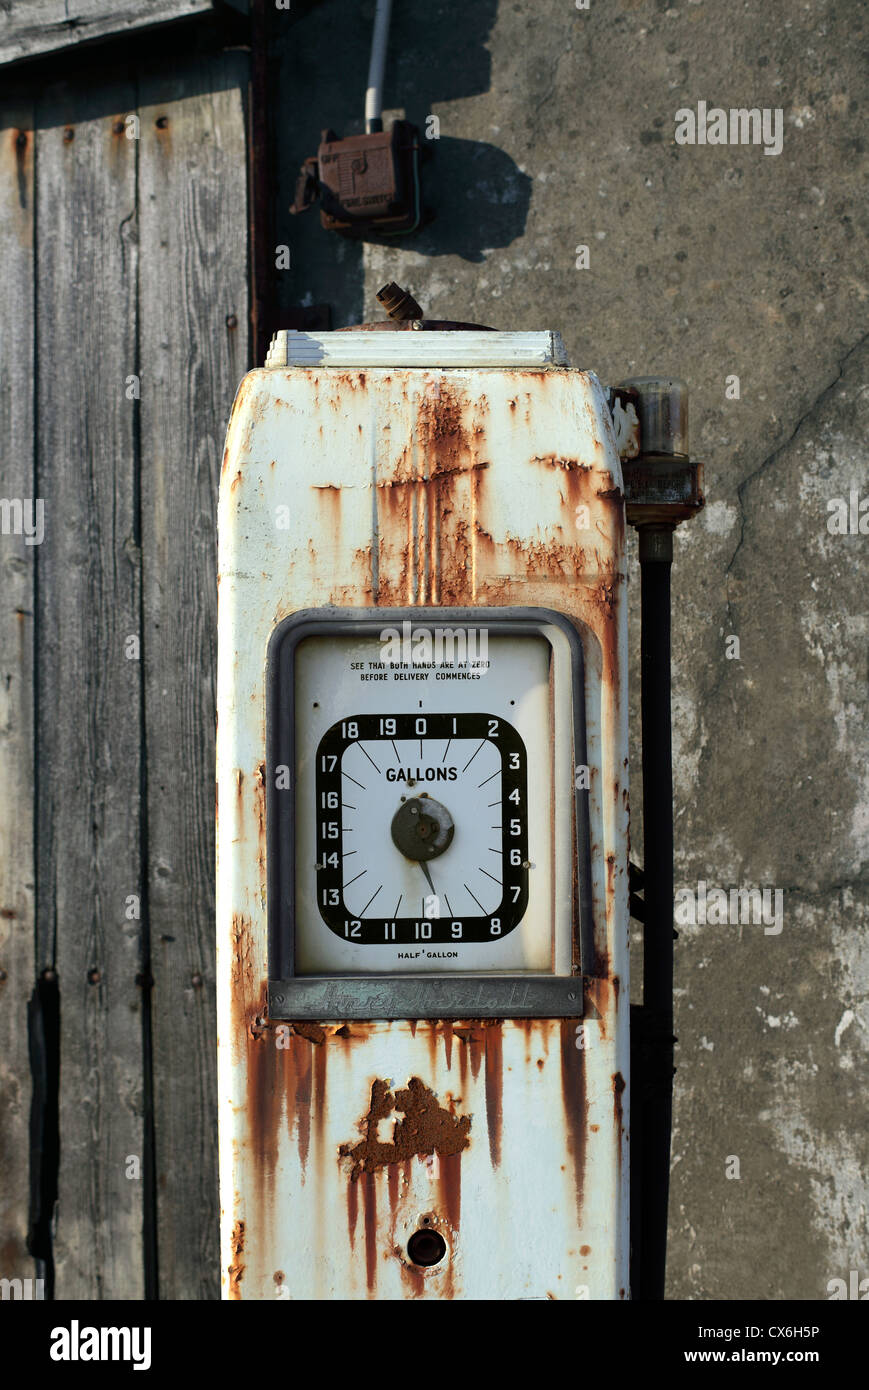 The end of oil? Disused petrol pump, Llanrug, North Wales. - Stock Image